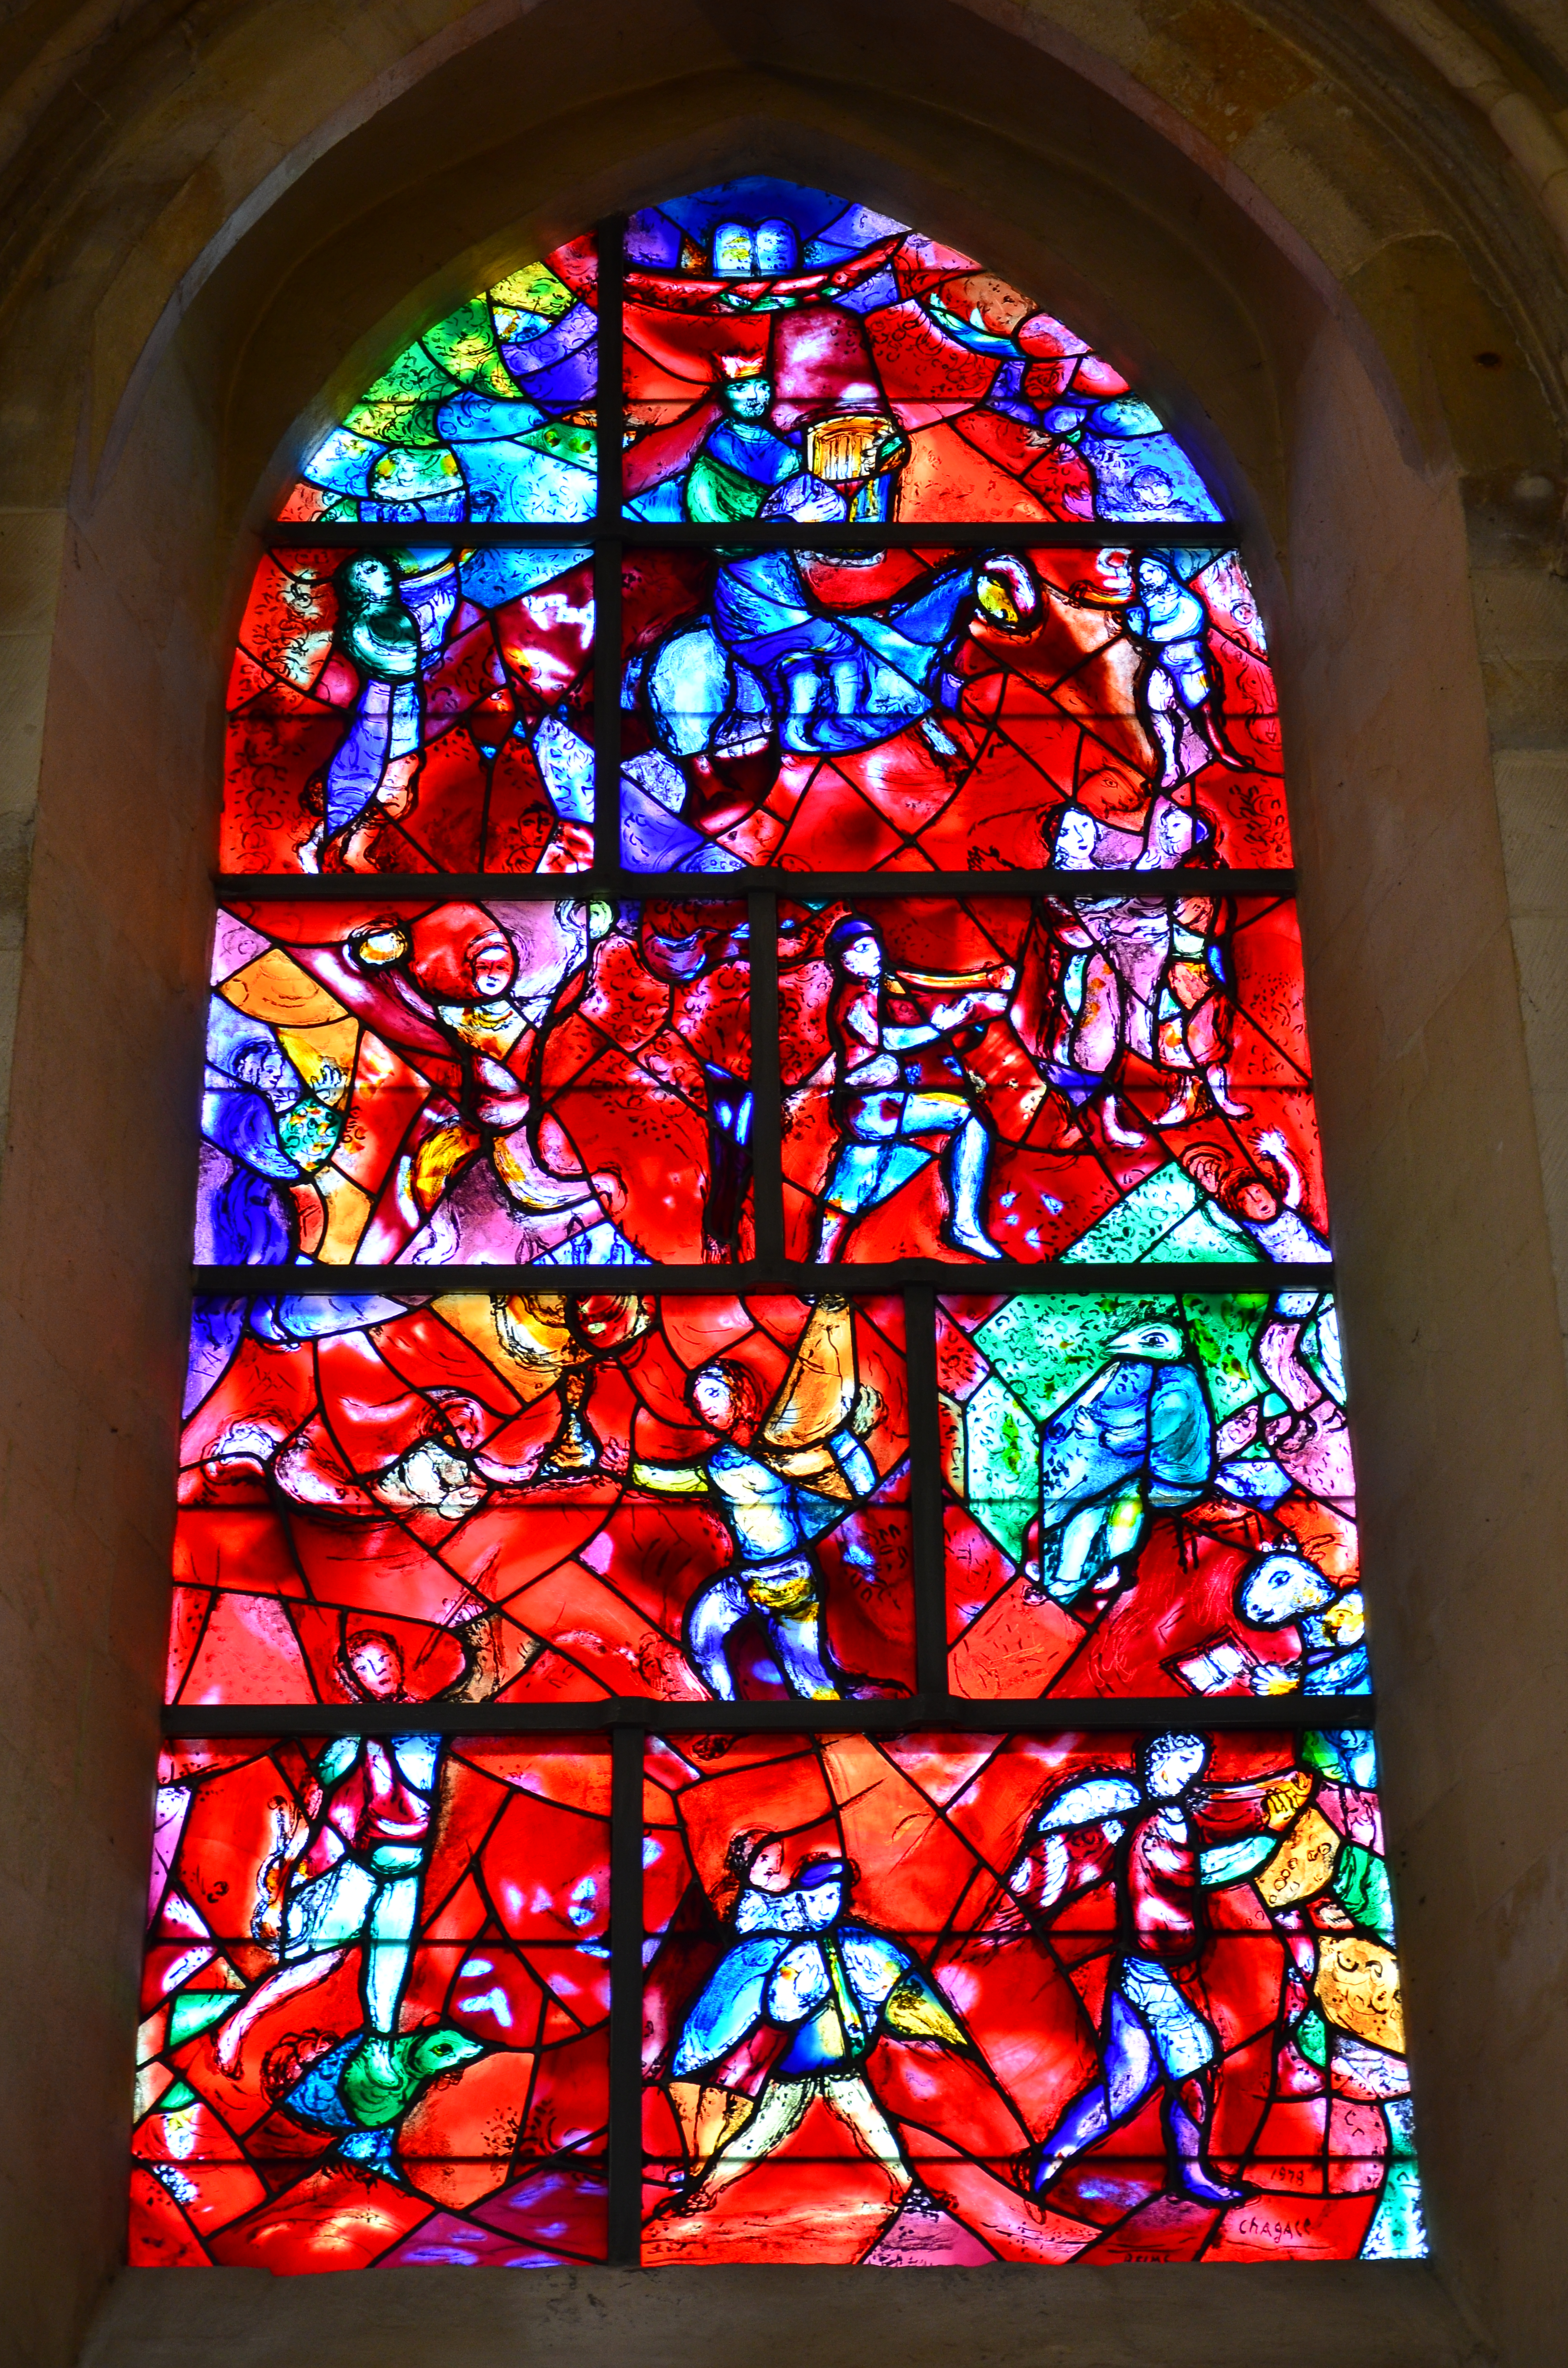 'Vredesraam' door Marc Chagall in de kathedraal van Chichester. © Ben Sutherland, Flickr CC